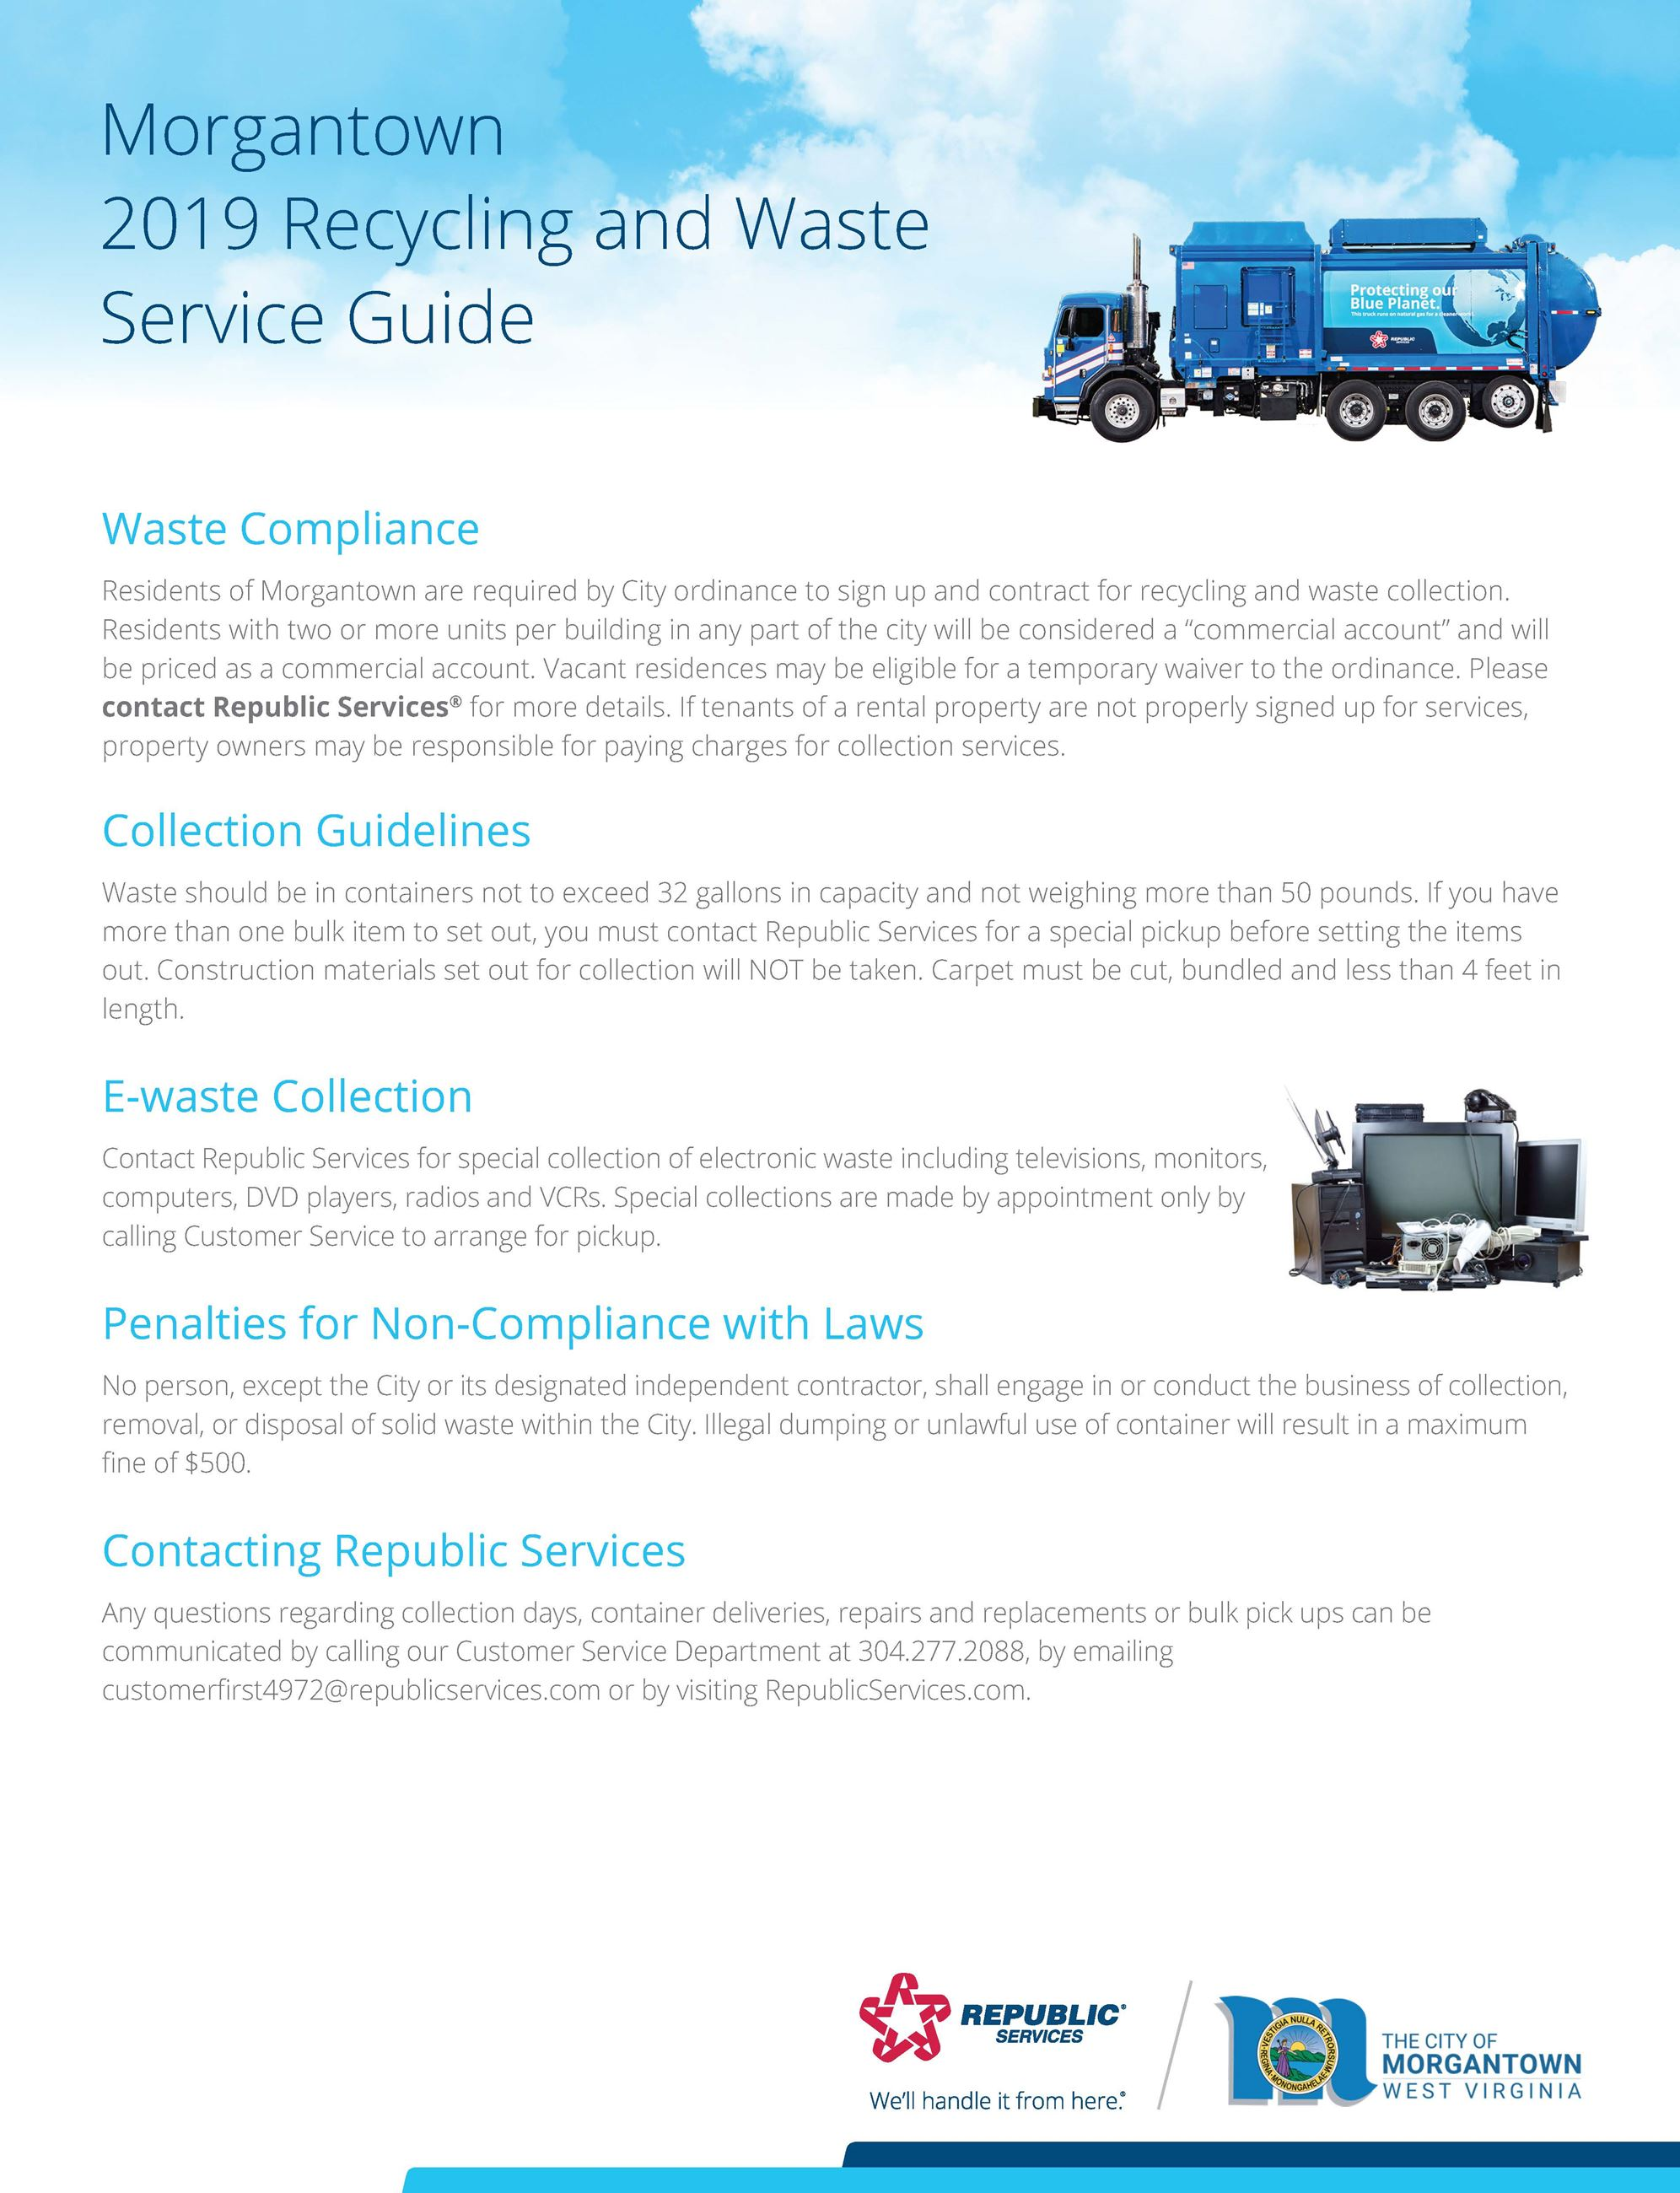 A picture of the cover page of the 2019 Morgantown Recycling and Waste Service Guide.